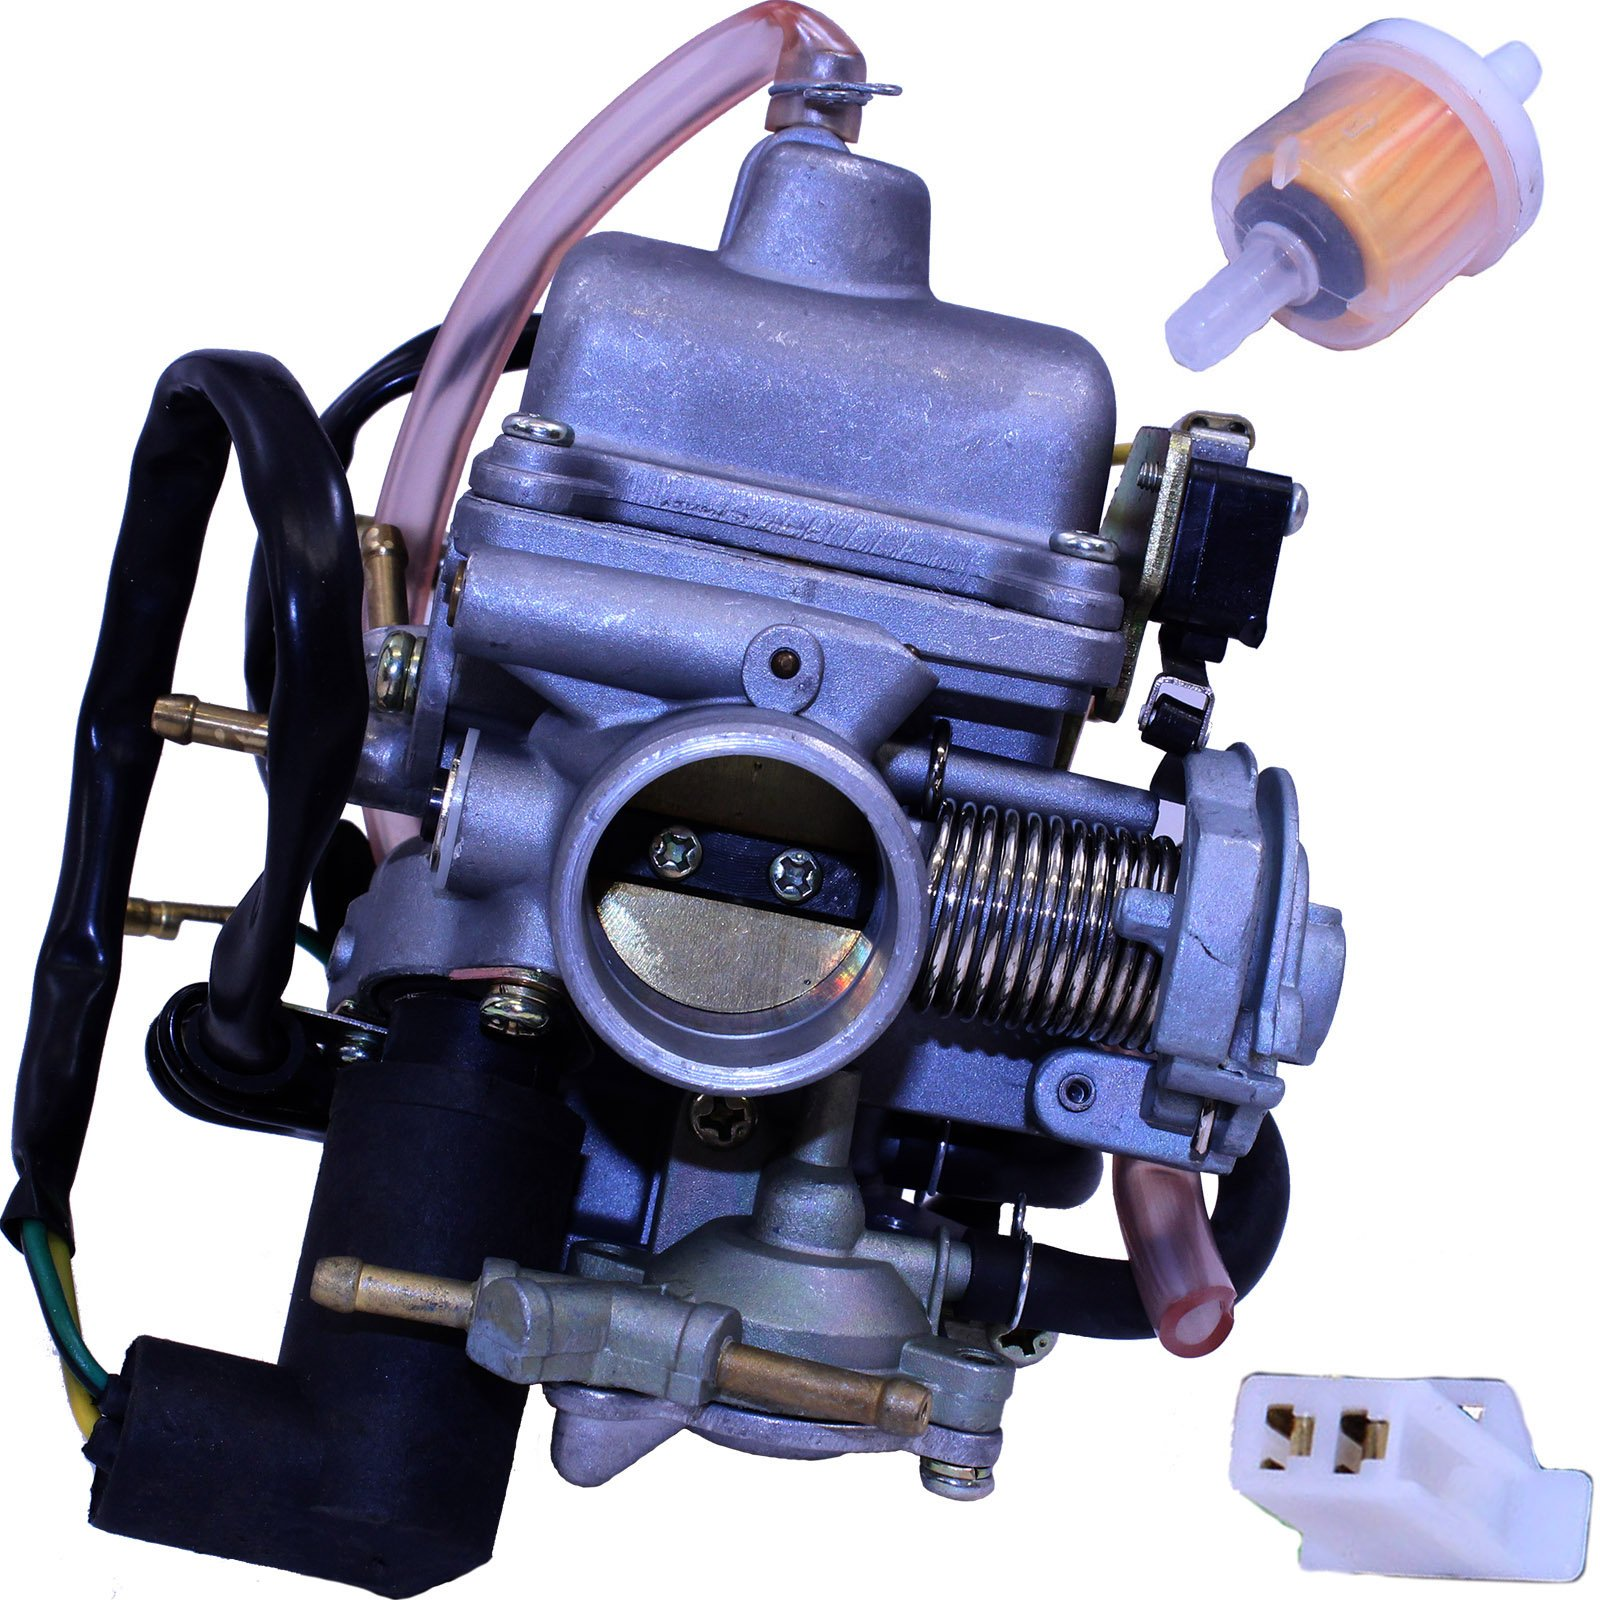 Carburetor for GY6 Vento Phantom R4i 125, 150 Scooters Honda OEM 16100-KJ9-673